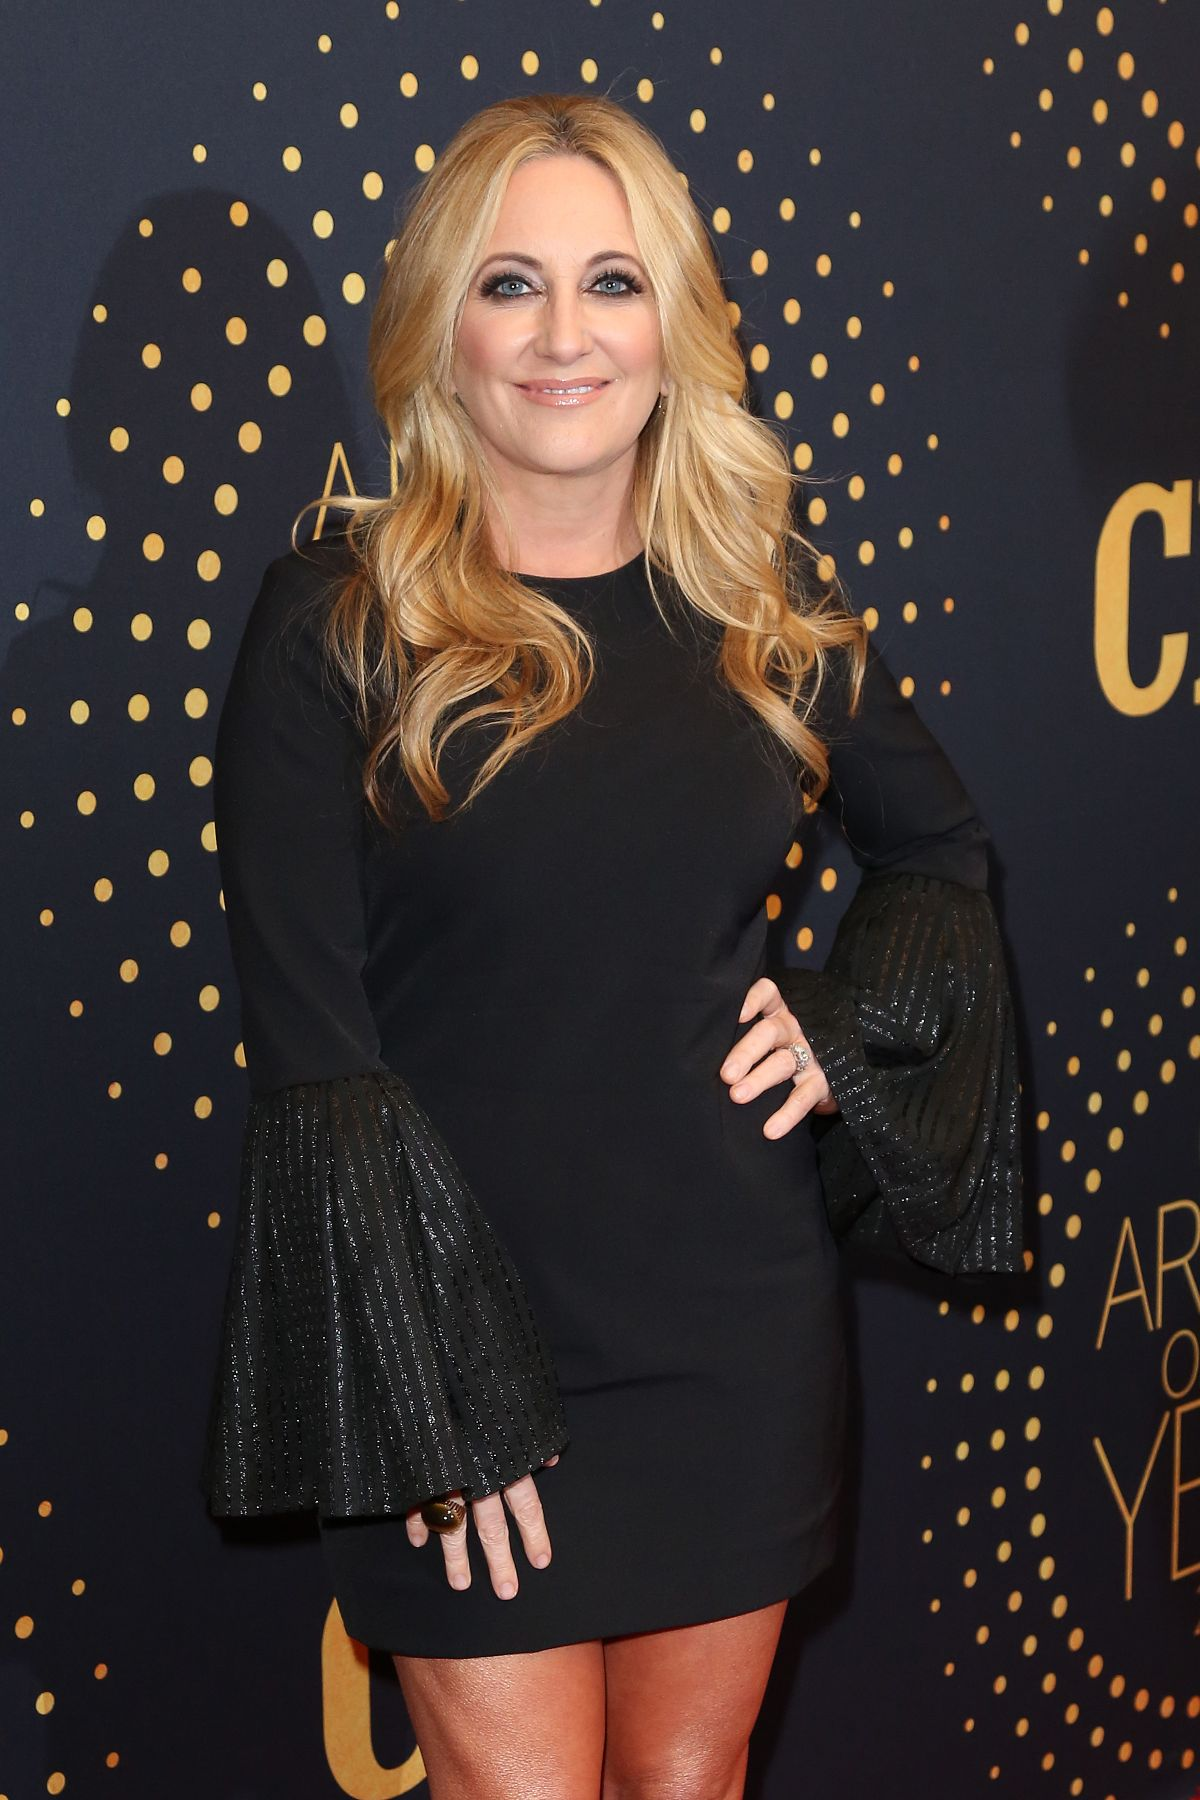 LEE ANN WOMACK at 2015 CMT Artists of the Year Awards in Nashville 12/02/2015